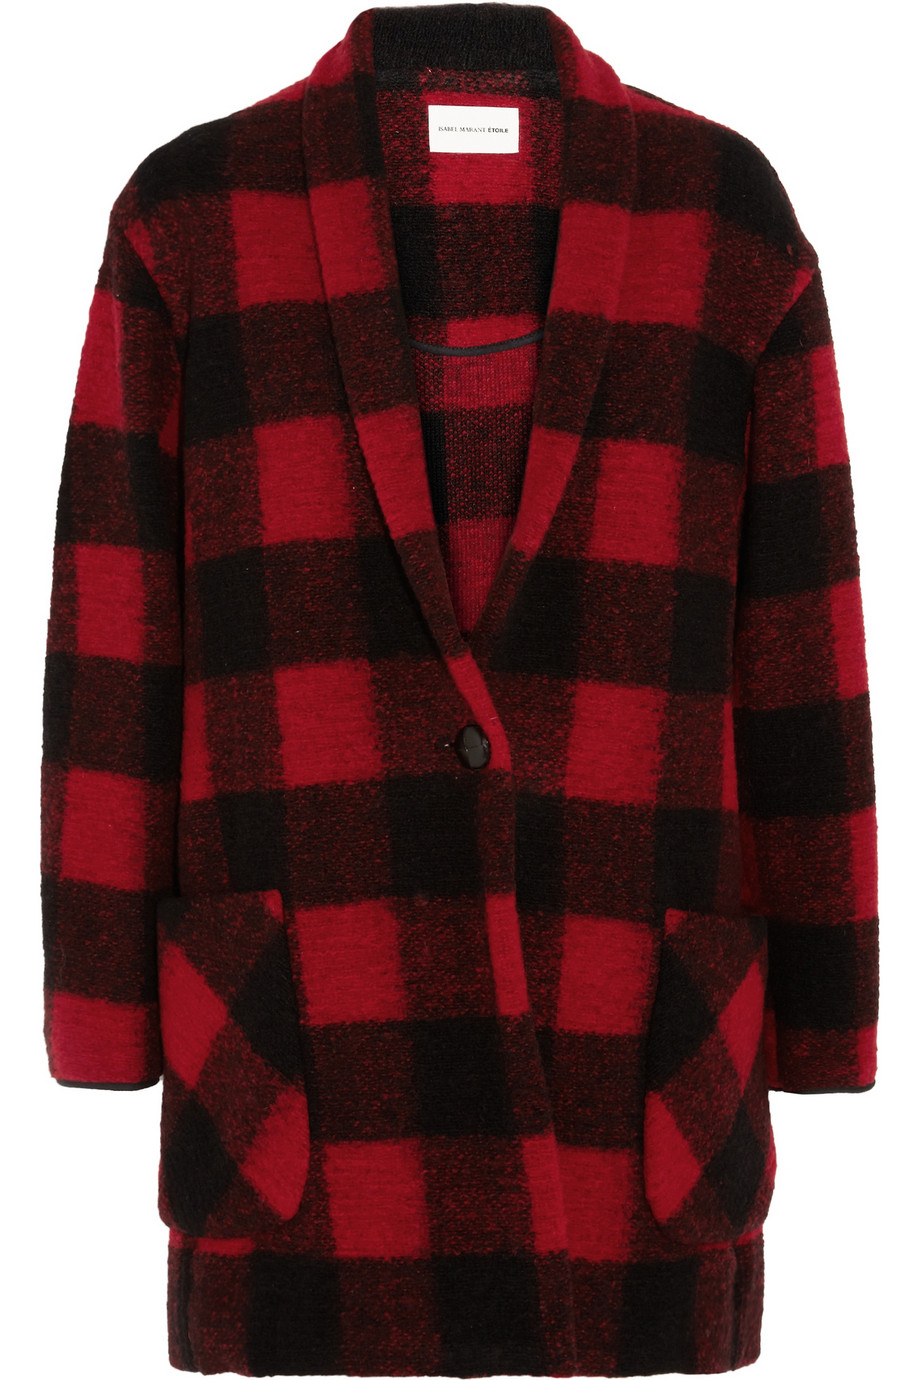 lyst toile isabel marant gabrie plaid woolblend coat in red. Black Bedroom Furniture Sets. Home Design Ideas